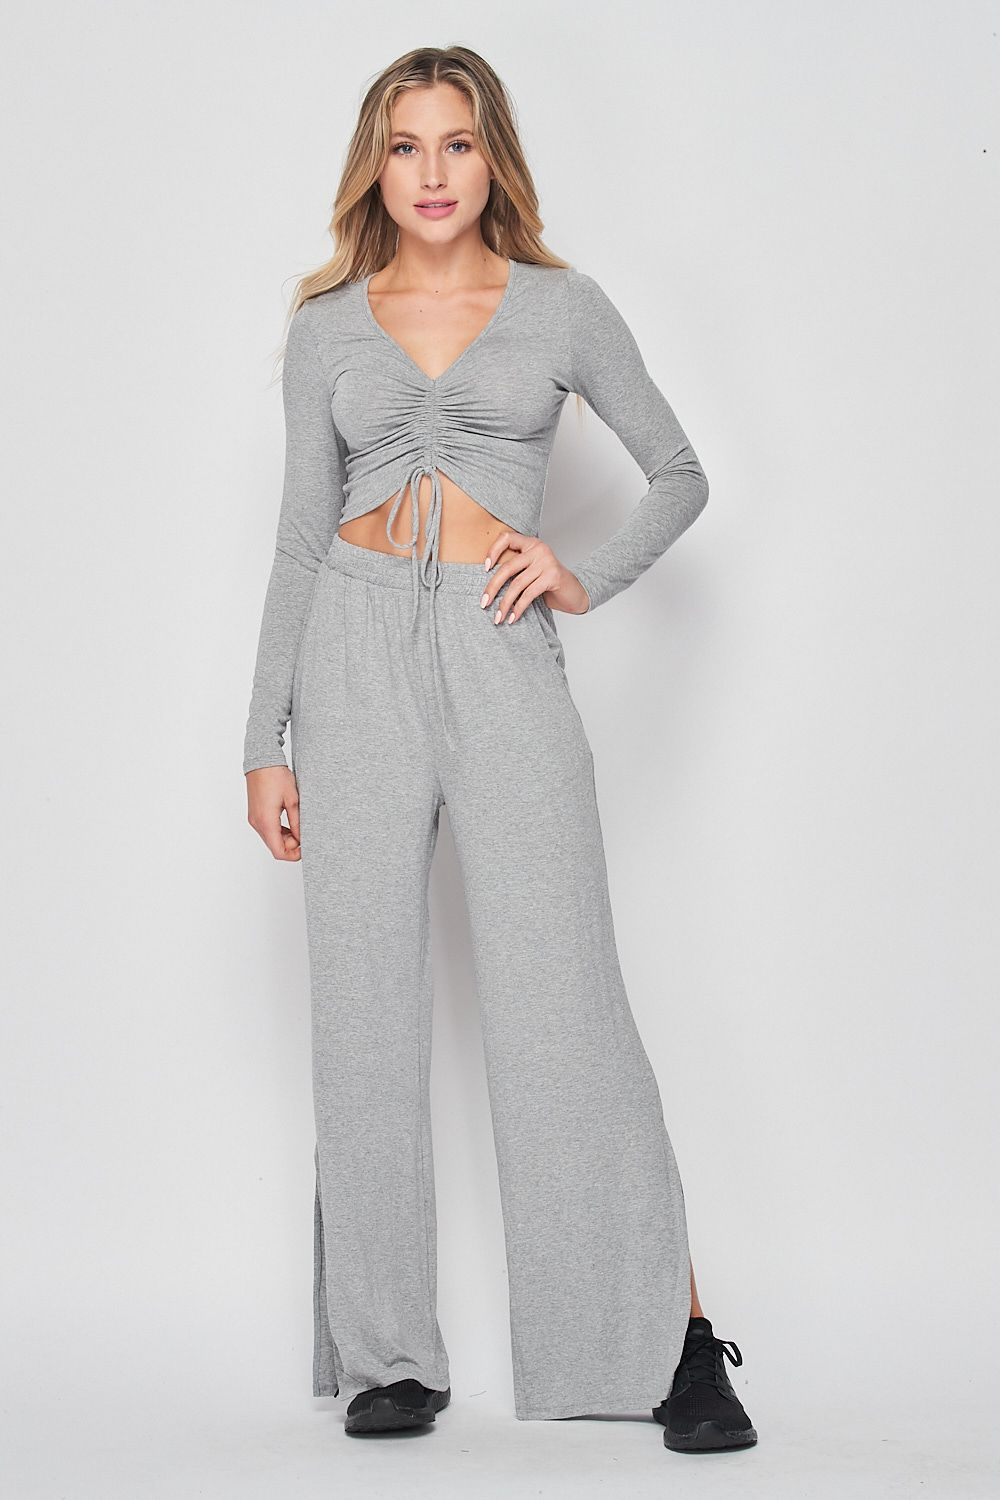 Blank Lewks | High Waisted Wide Leg Knit Pants | H.Grey